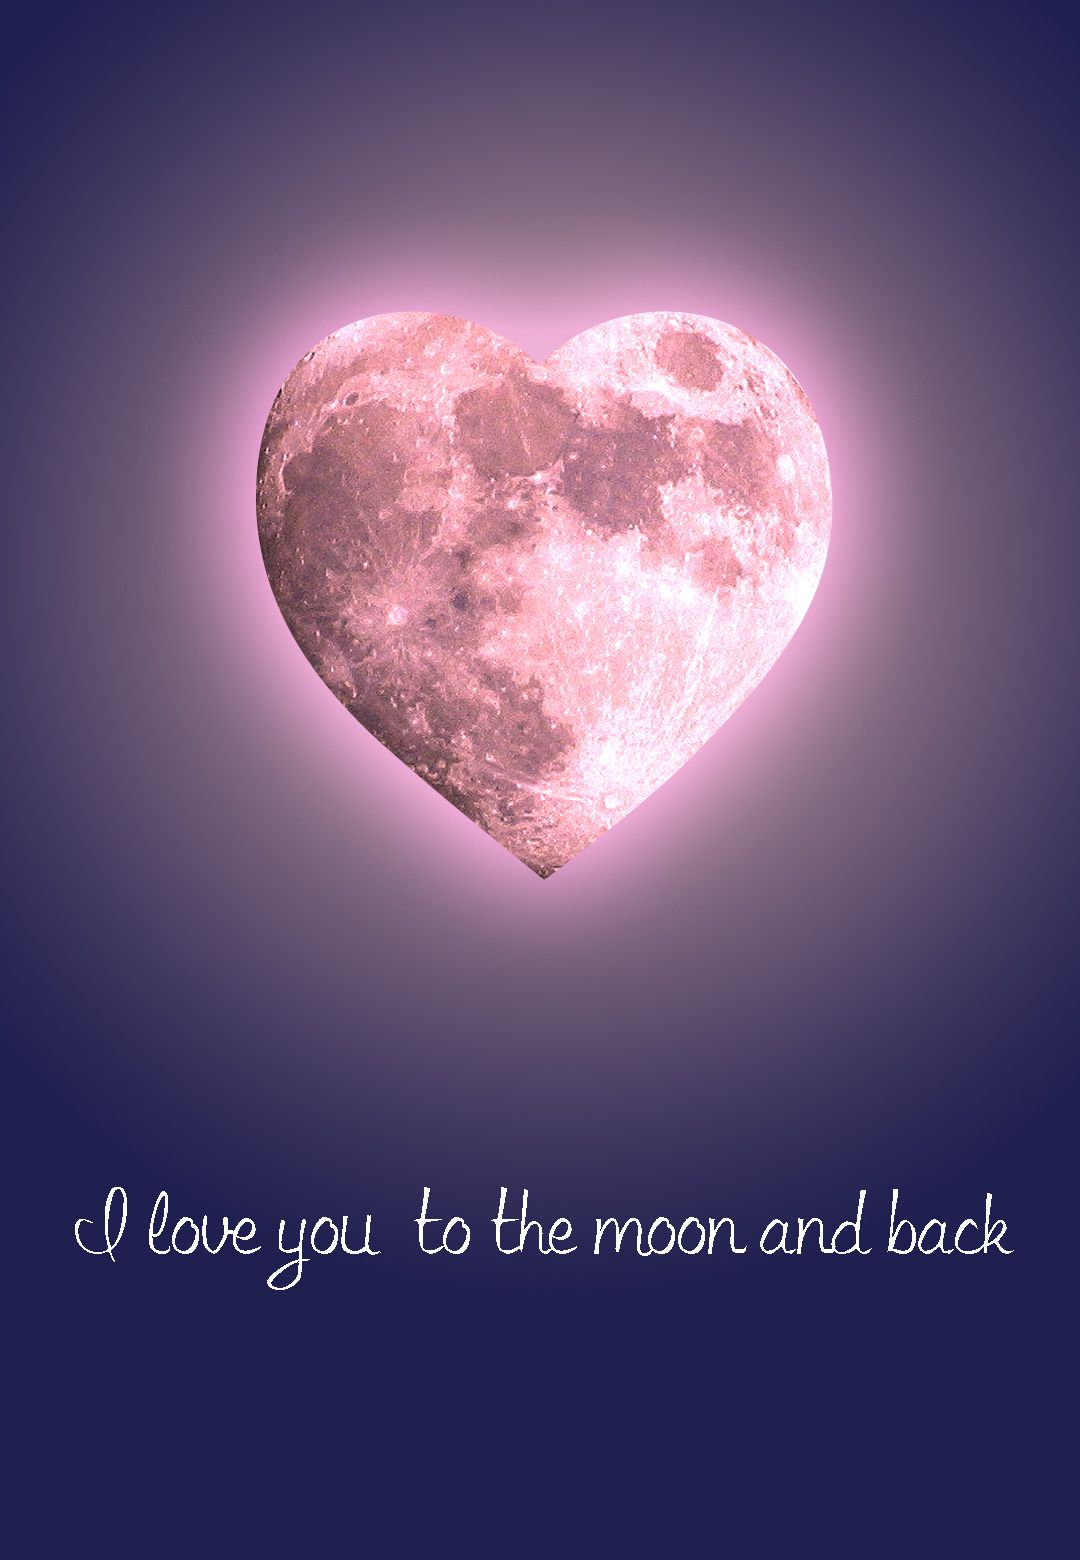 Free printable to the moon and back love greeting card lovecards free printable to the moon and back love greeting card lovecards love diylovecards diyromanticcards diyvalentinescards diycards greetingcards m4hsunfo